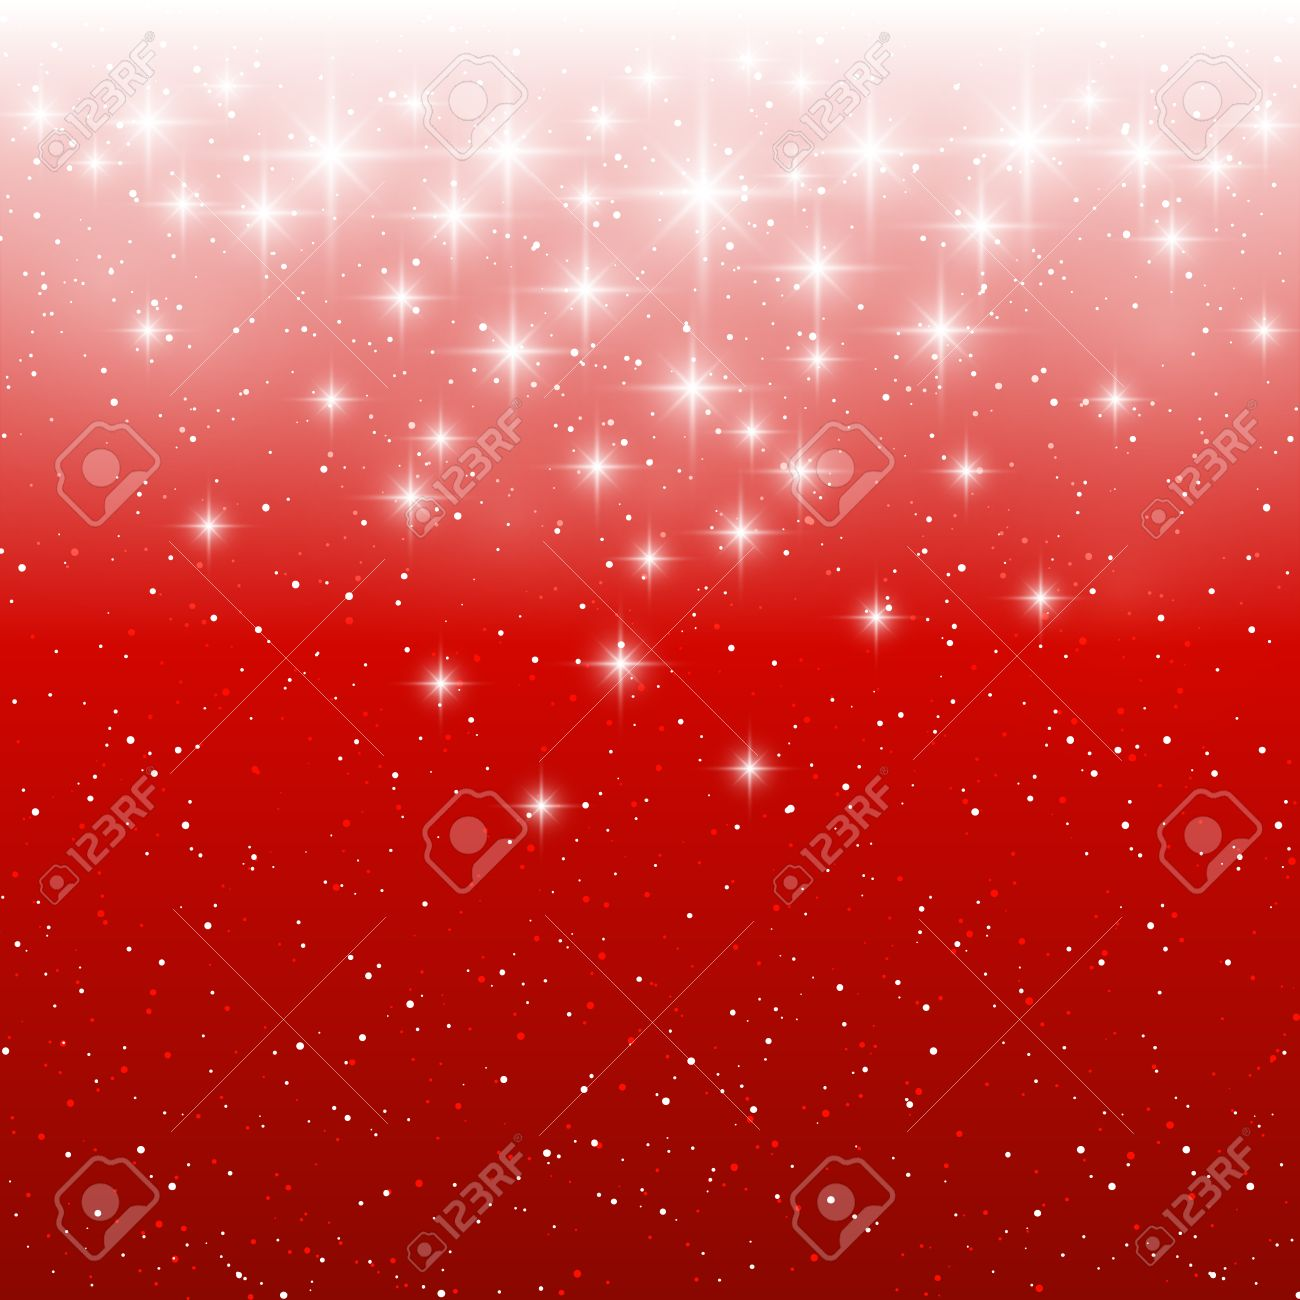 Starry light background for Your design - 48499003